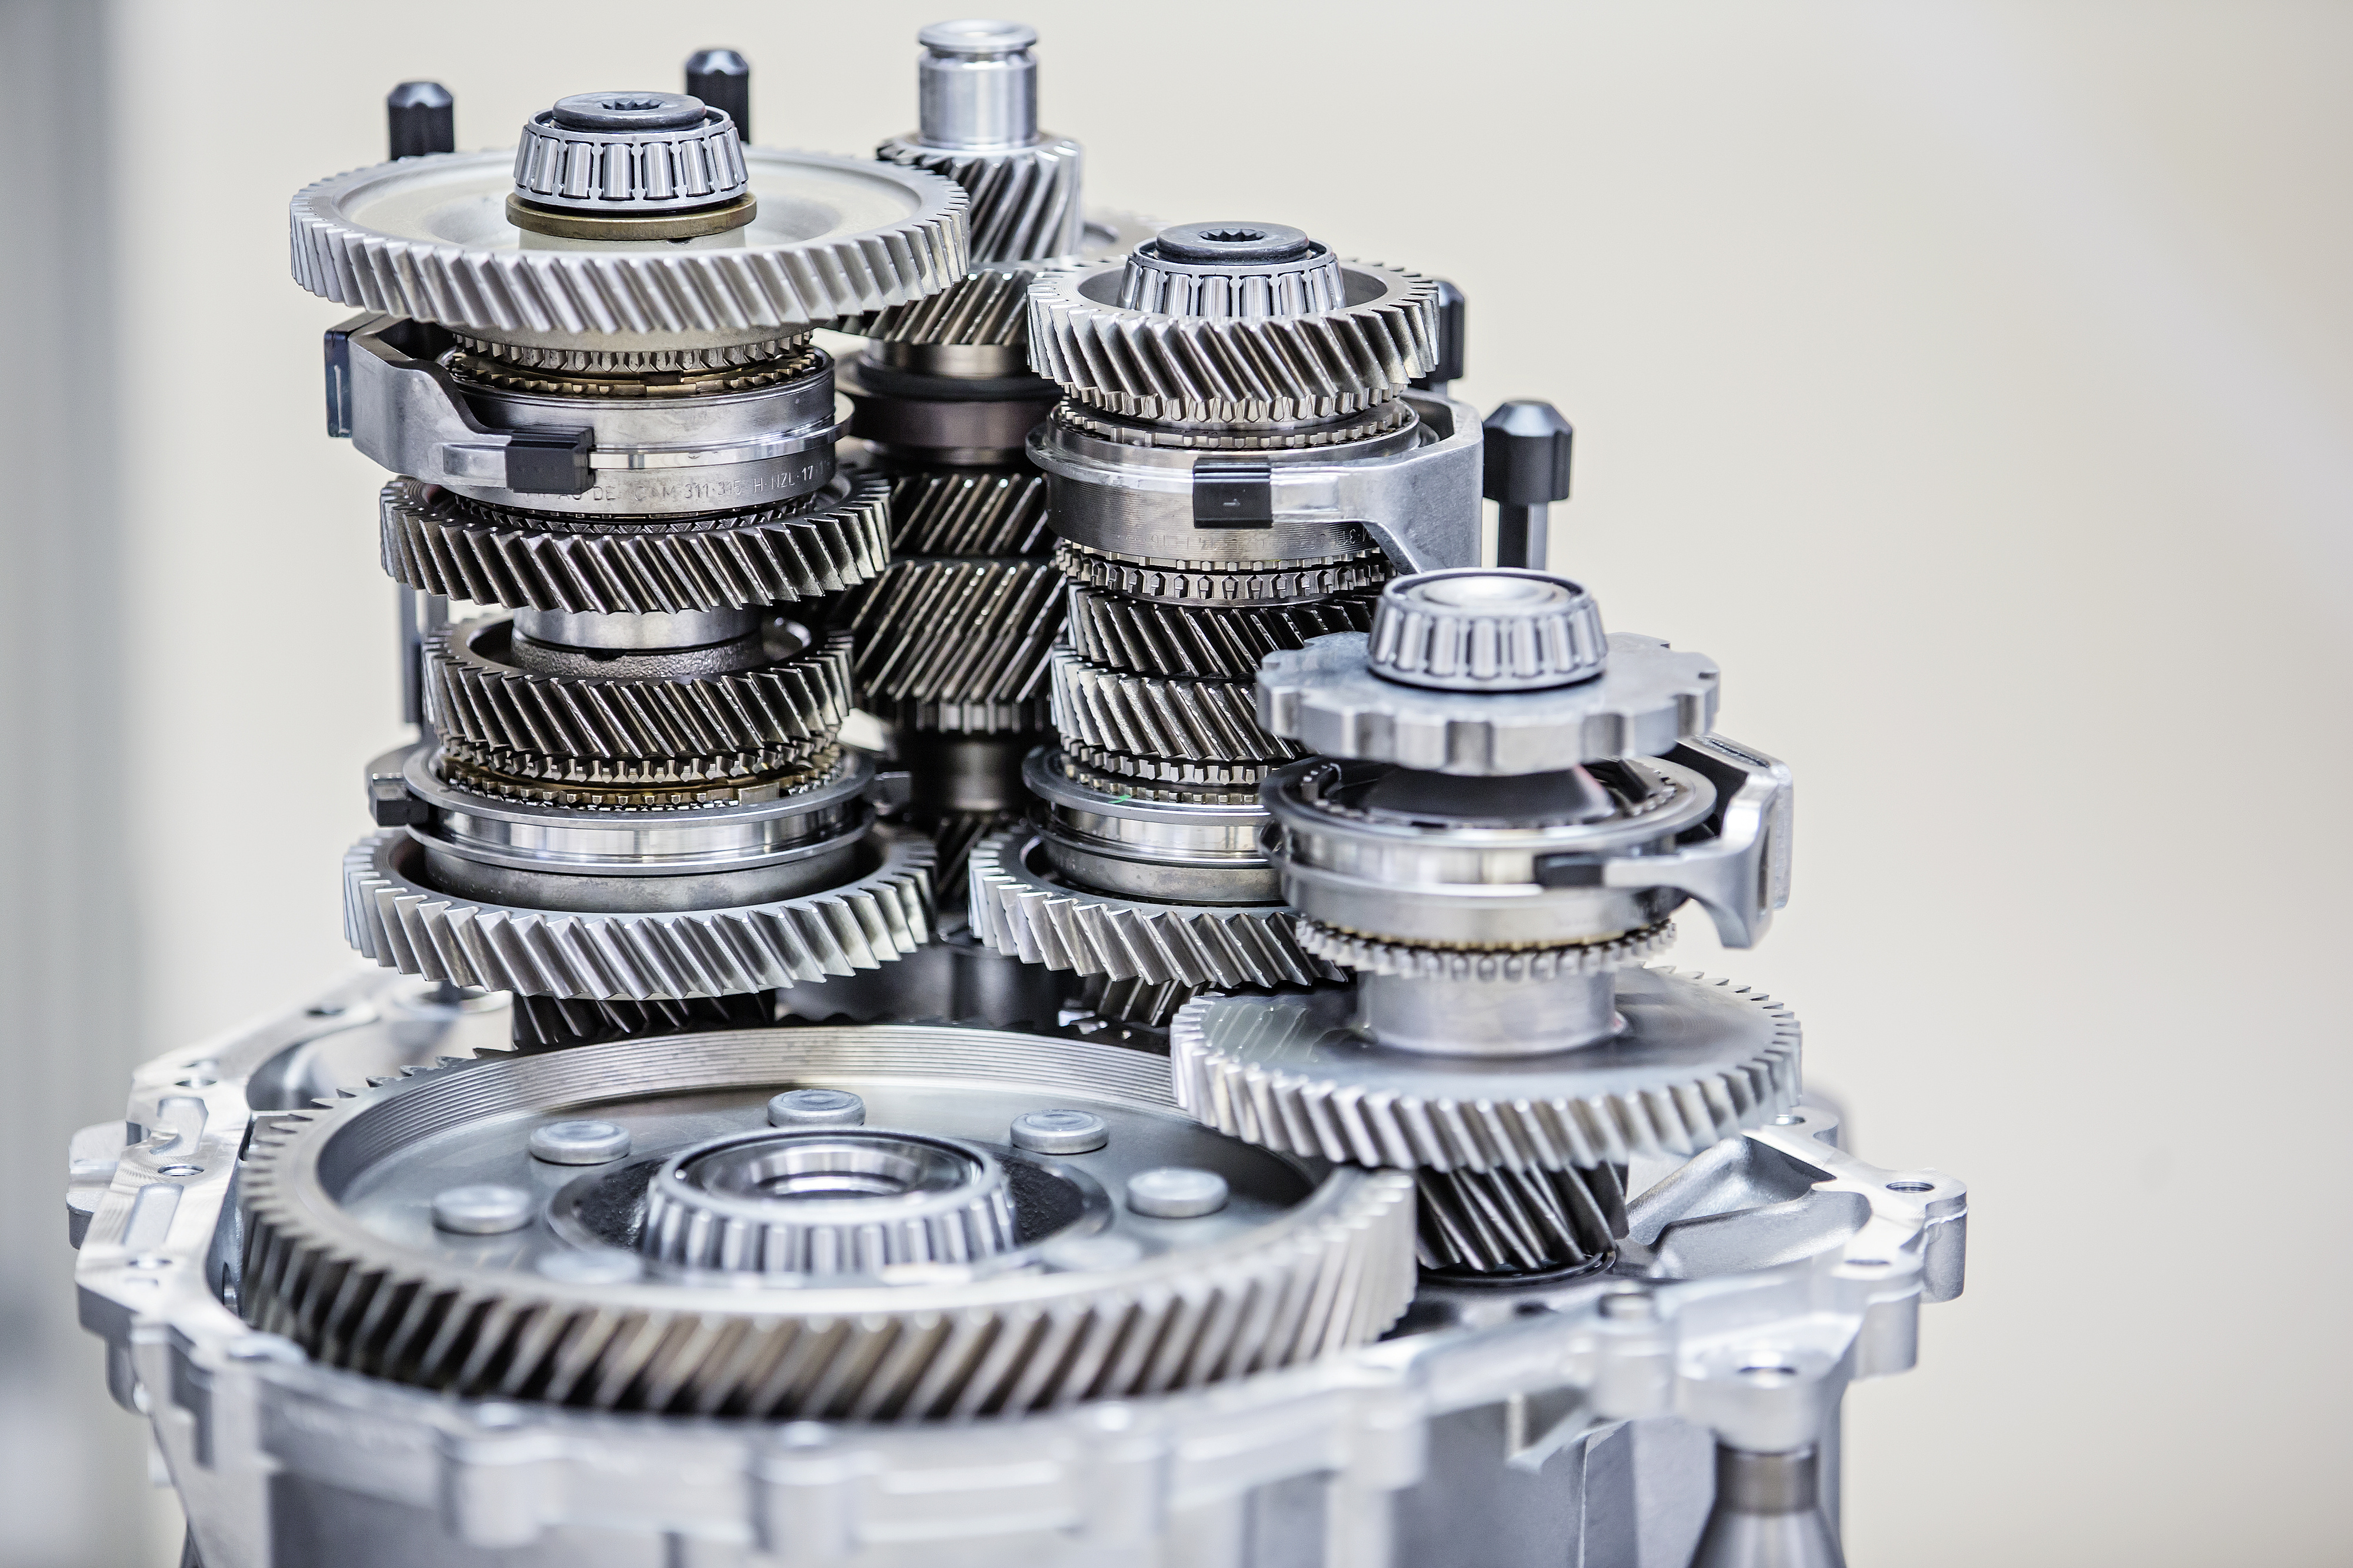 ŠKODA AUTO produces its 12 millionth gearbox of the current